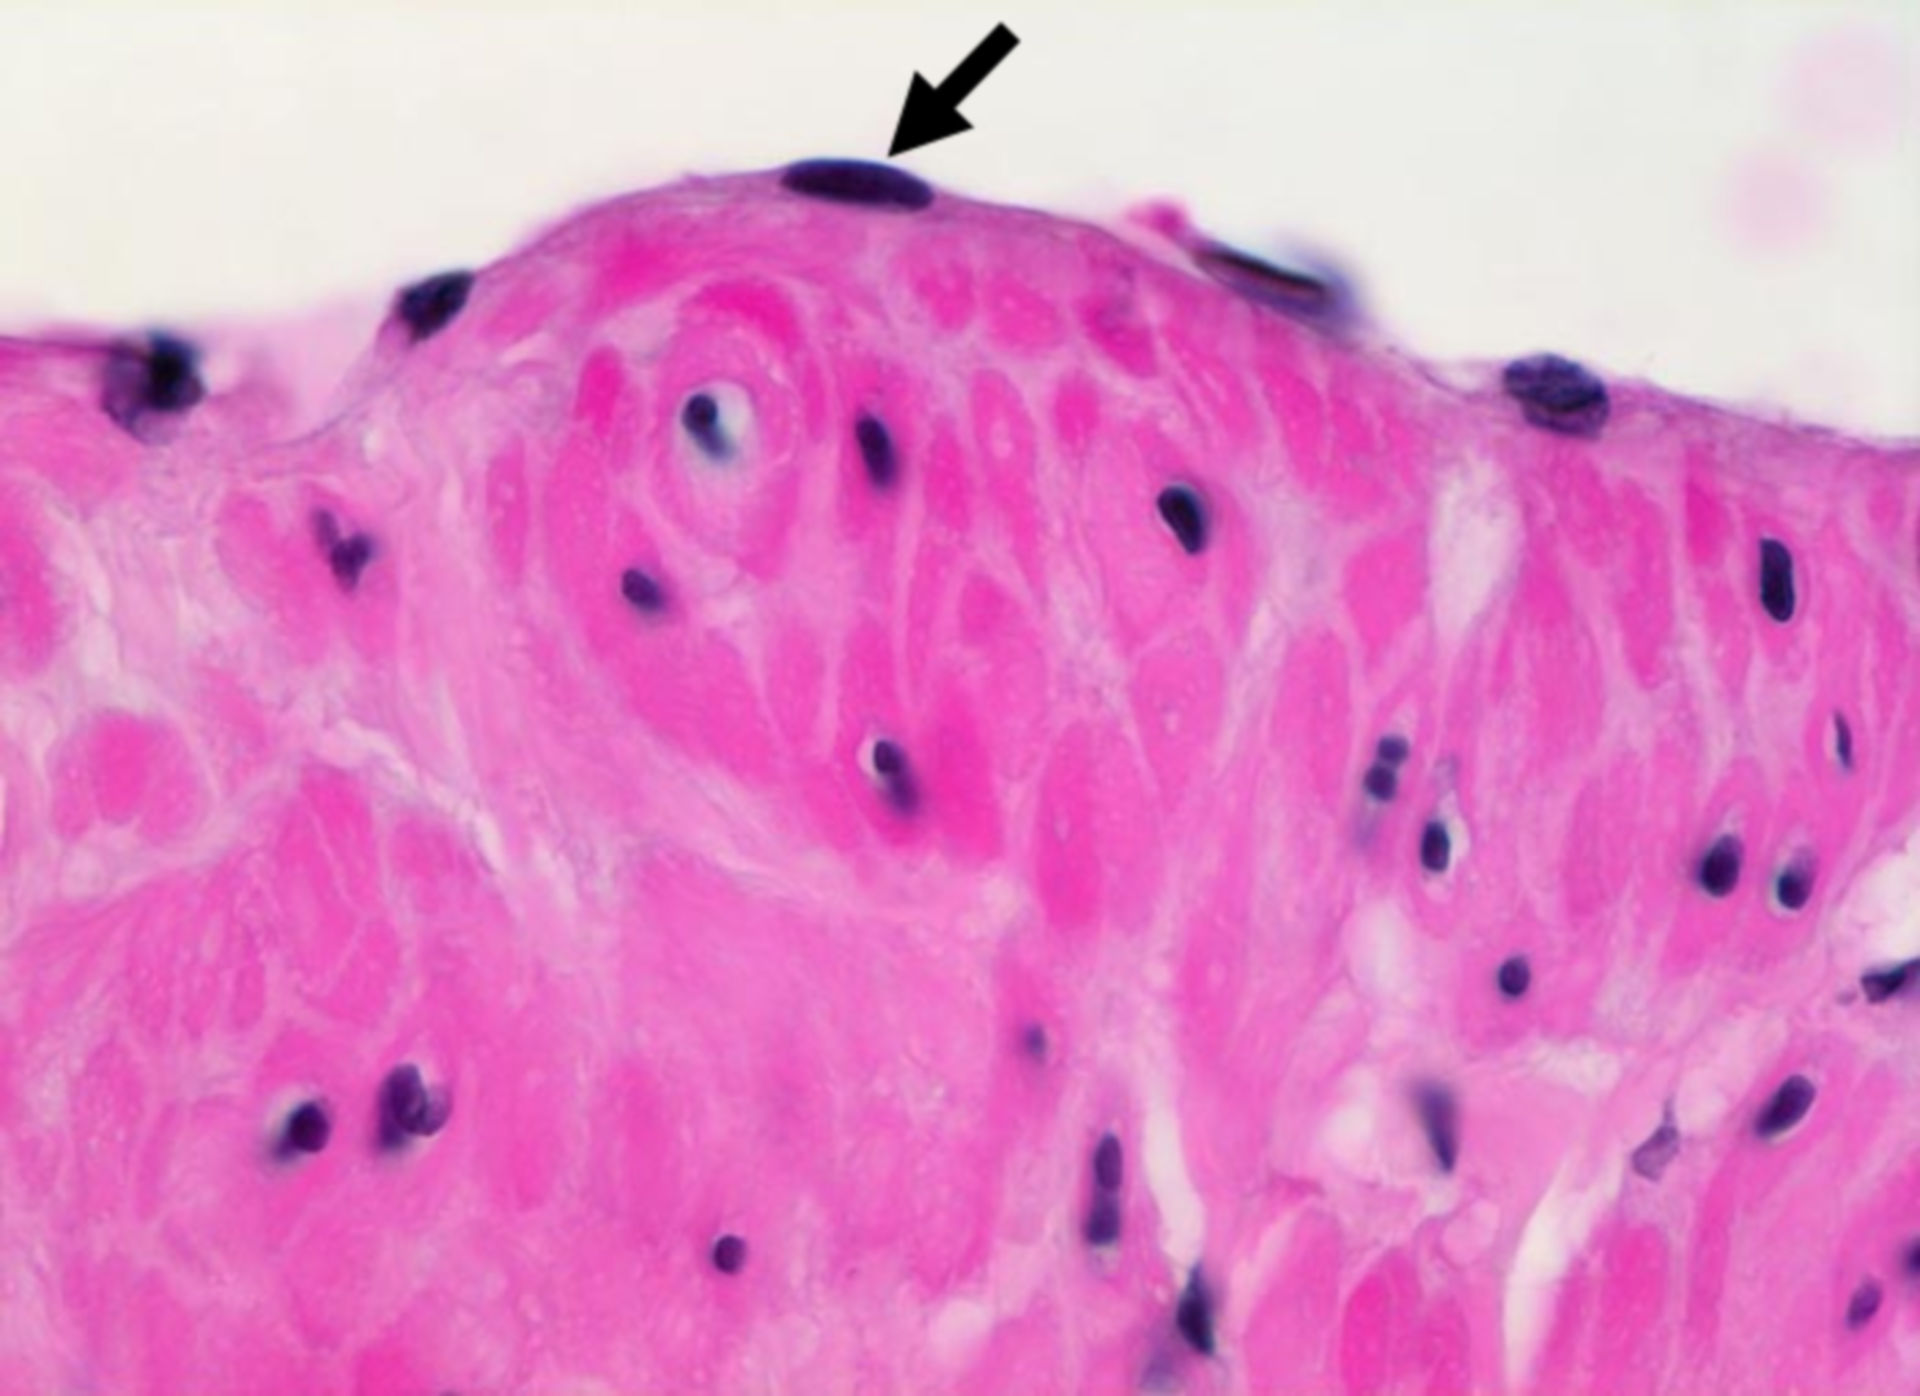 Endothelium of a normal venous wall (HE stain)